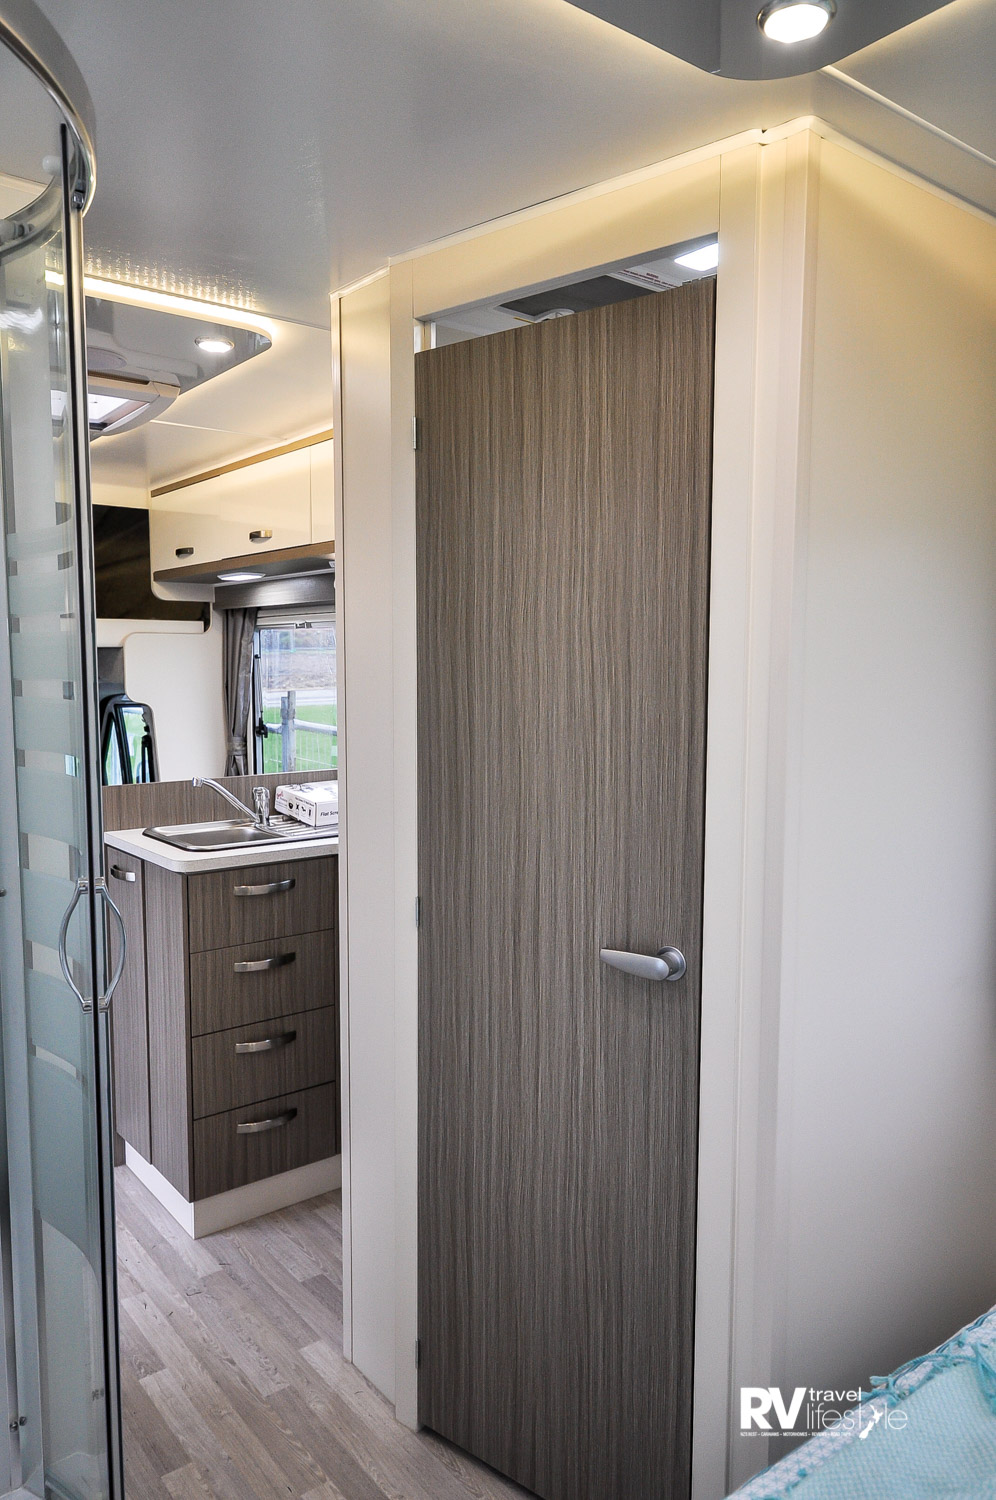 The rear bedroom has a separate toilet and shower